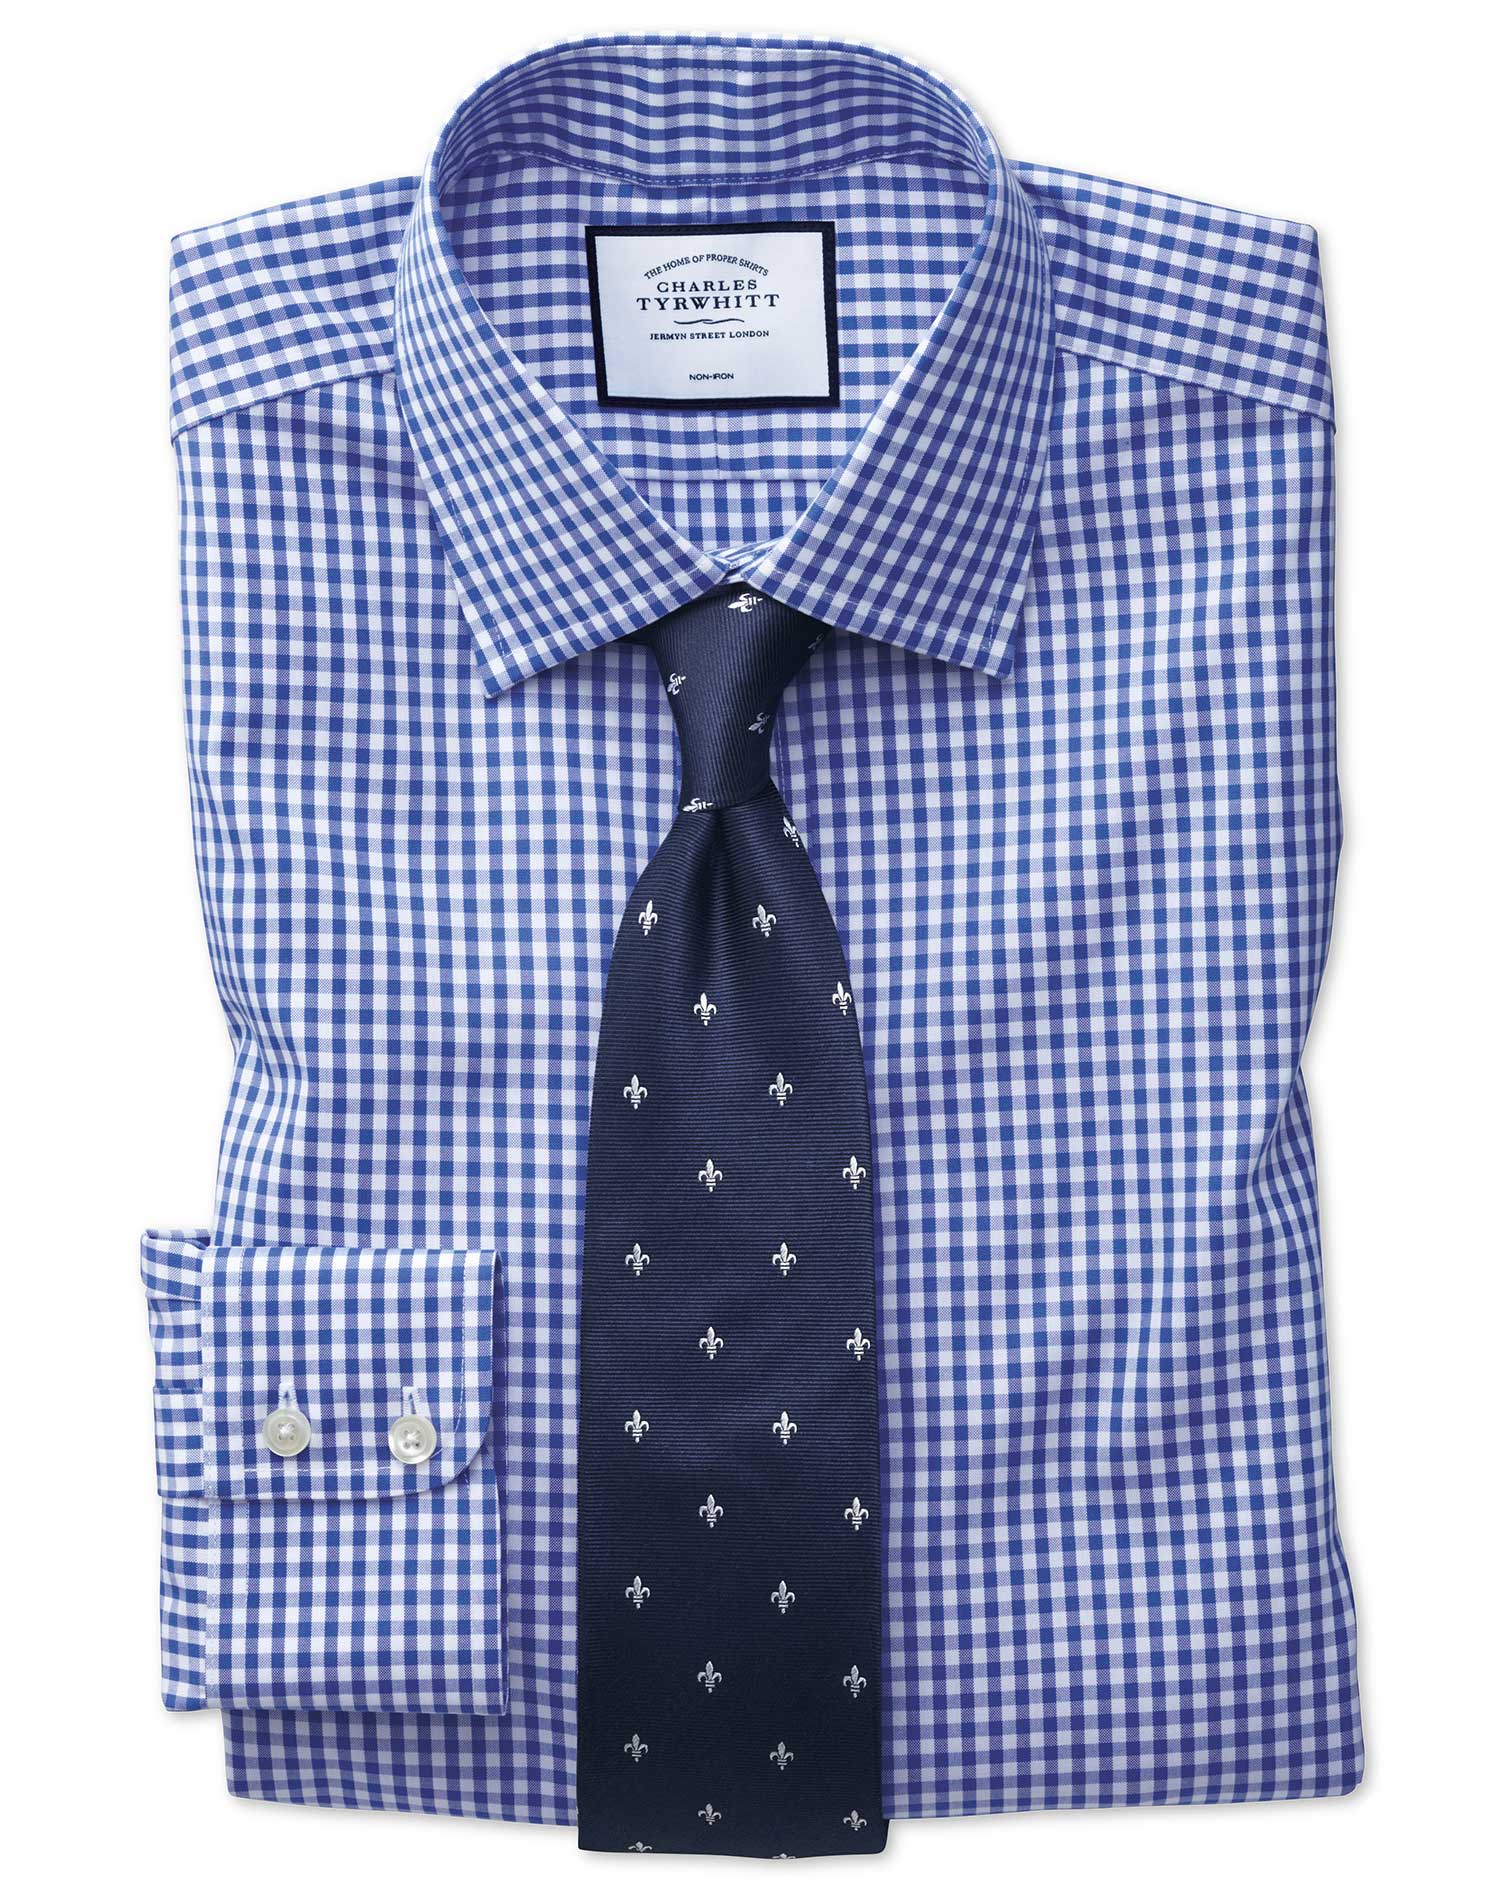 Slim Fit Non-Iron Twill Royal Blue Check Cotton Formal Shirt Single Cuff Size 17/35 by Charles Tyrwh